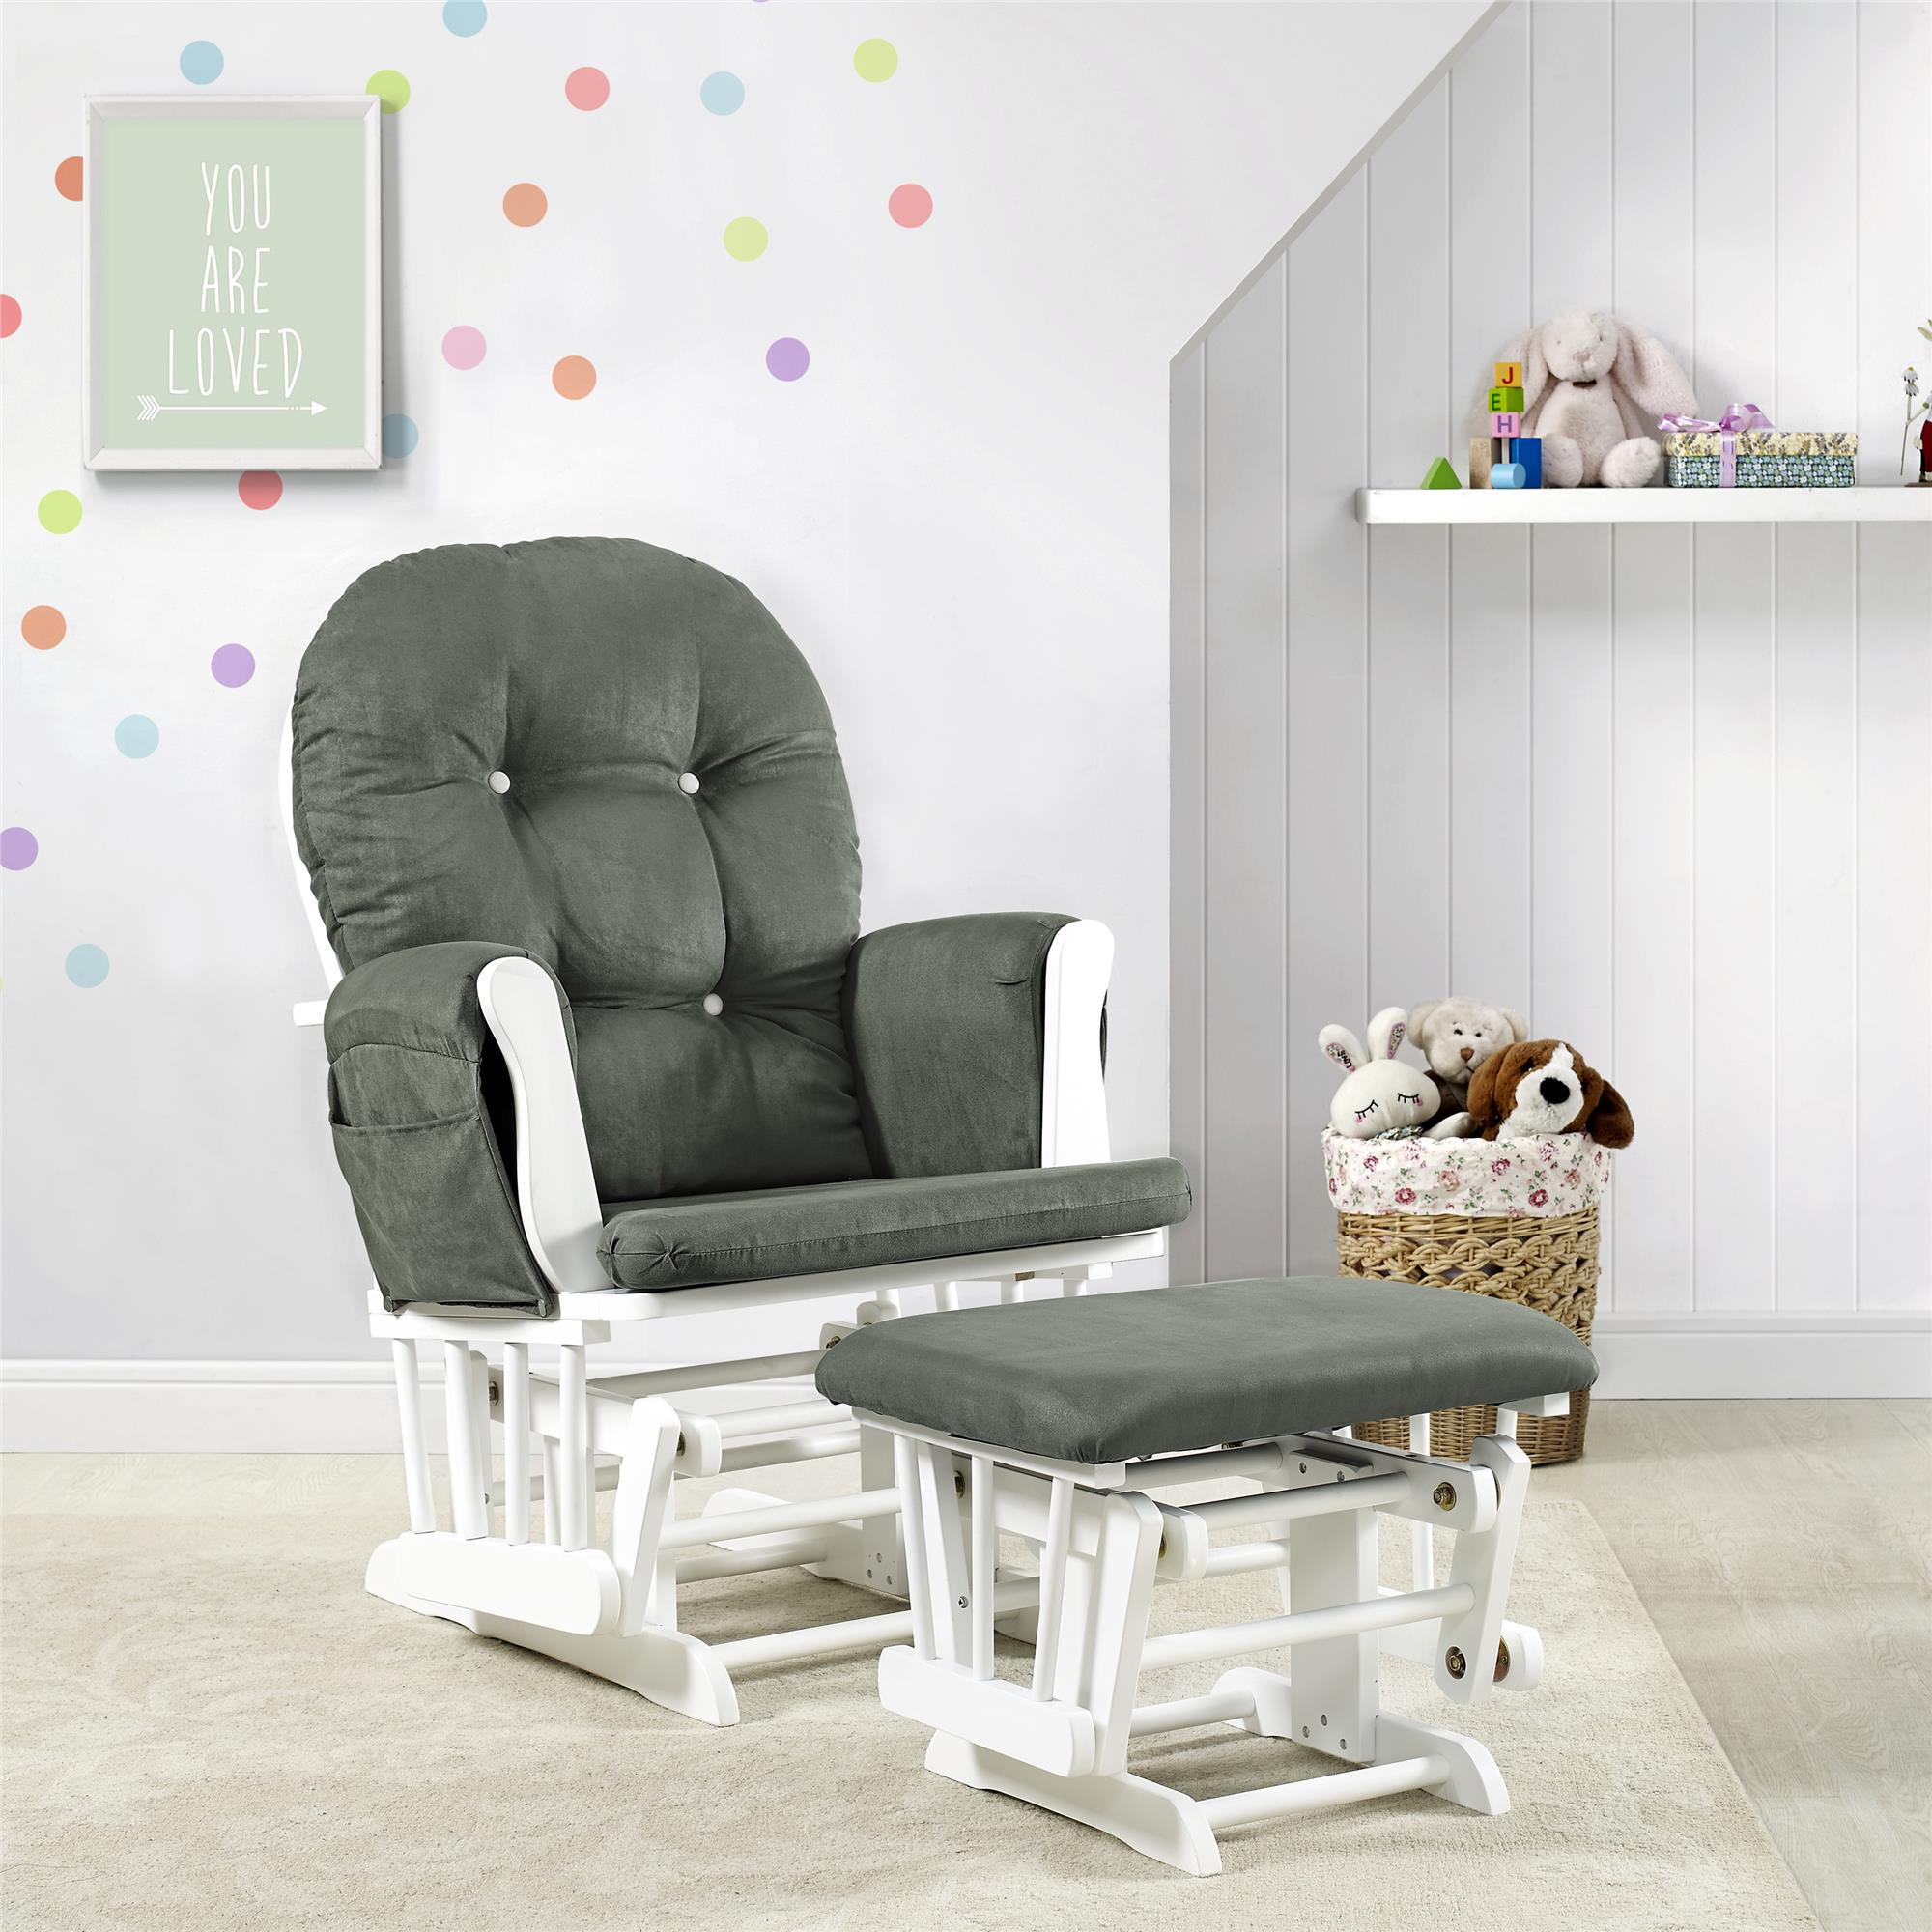 Baby Relax Carly Glider and Ottoman, White with Gray microfiber by Dorel Asia